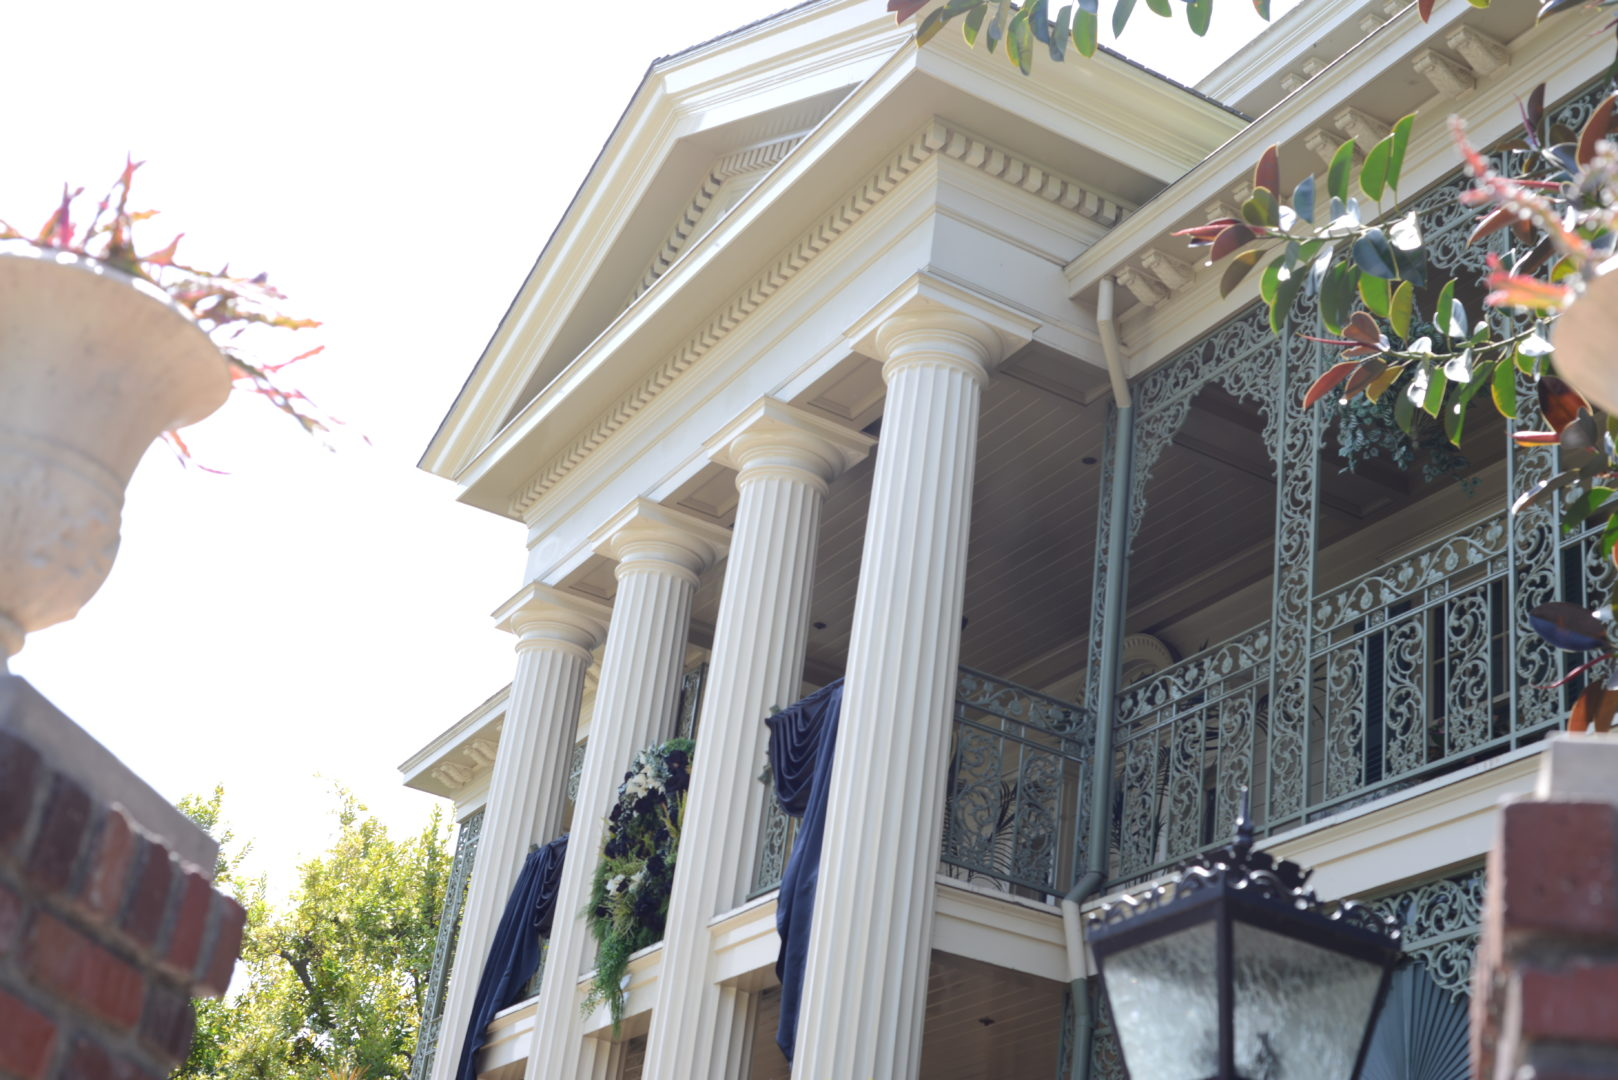 Haunted Mansion Side View of Entrance at Disneyland